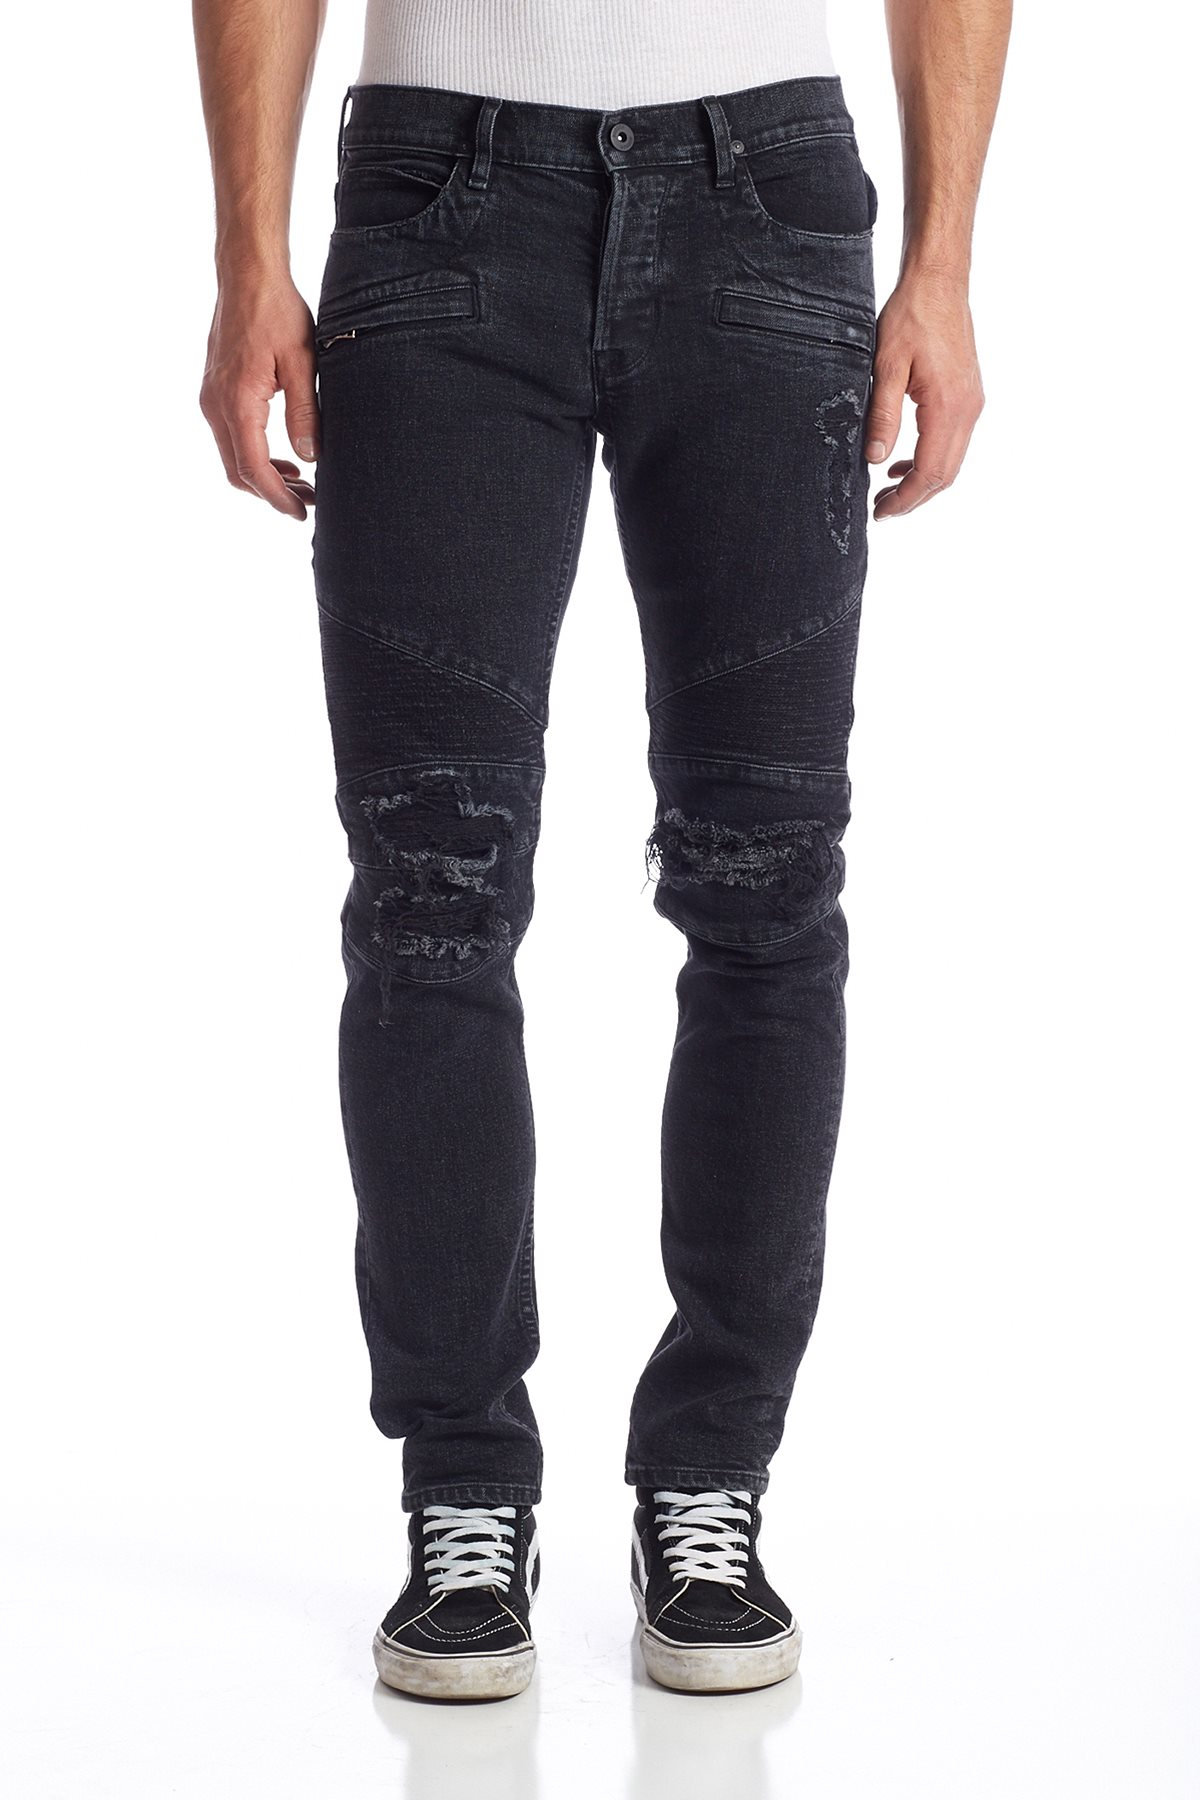 How To Get The Best Black Denim Quality - Style Jeans